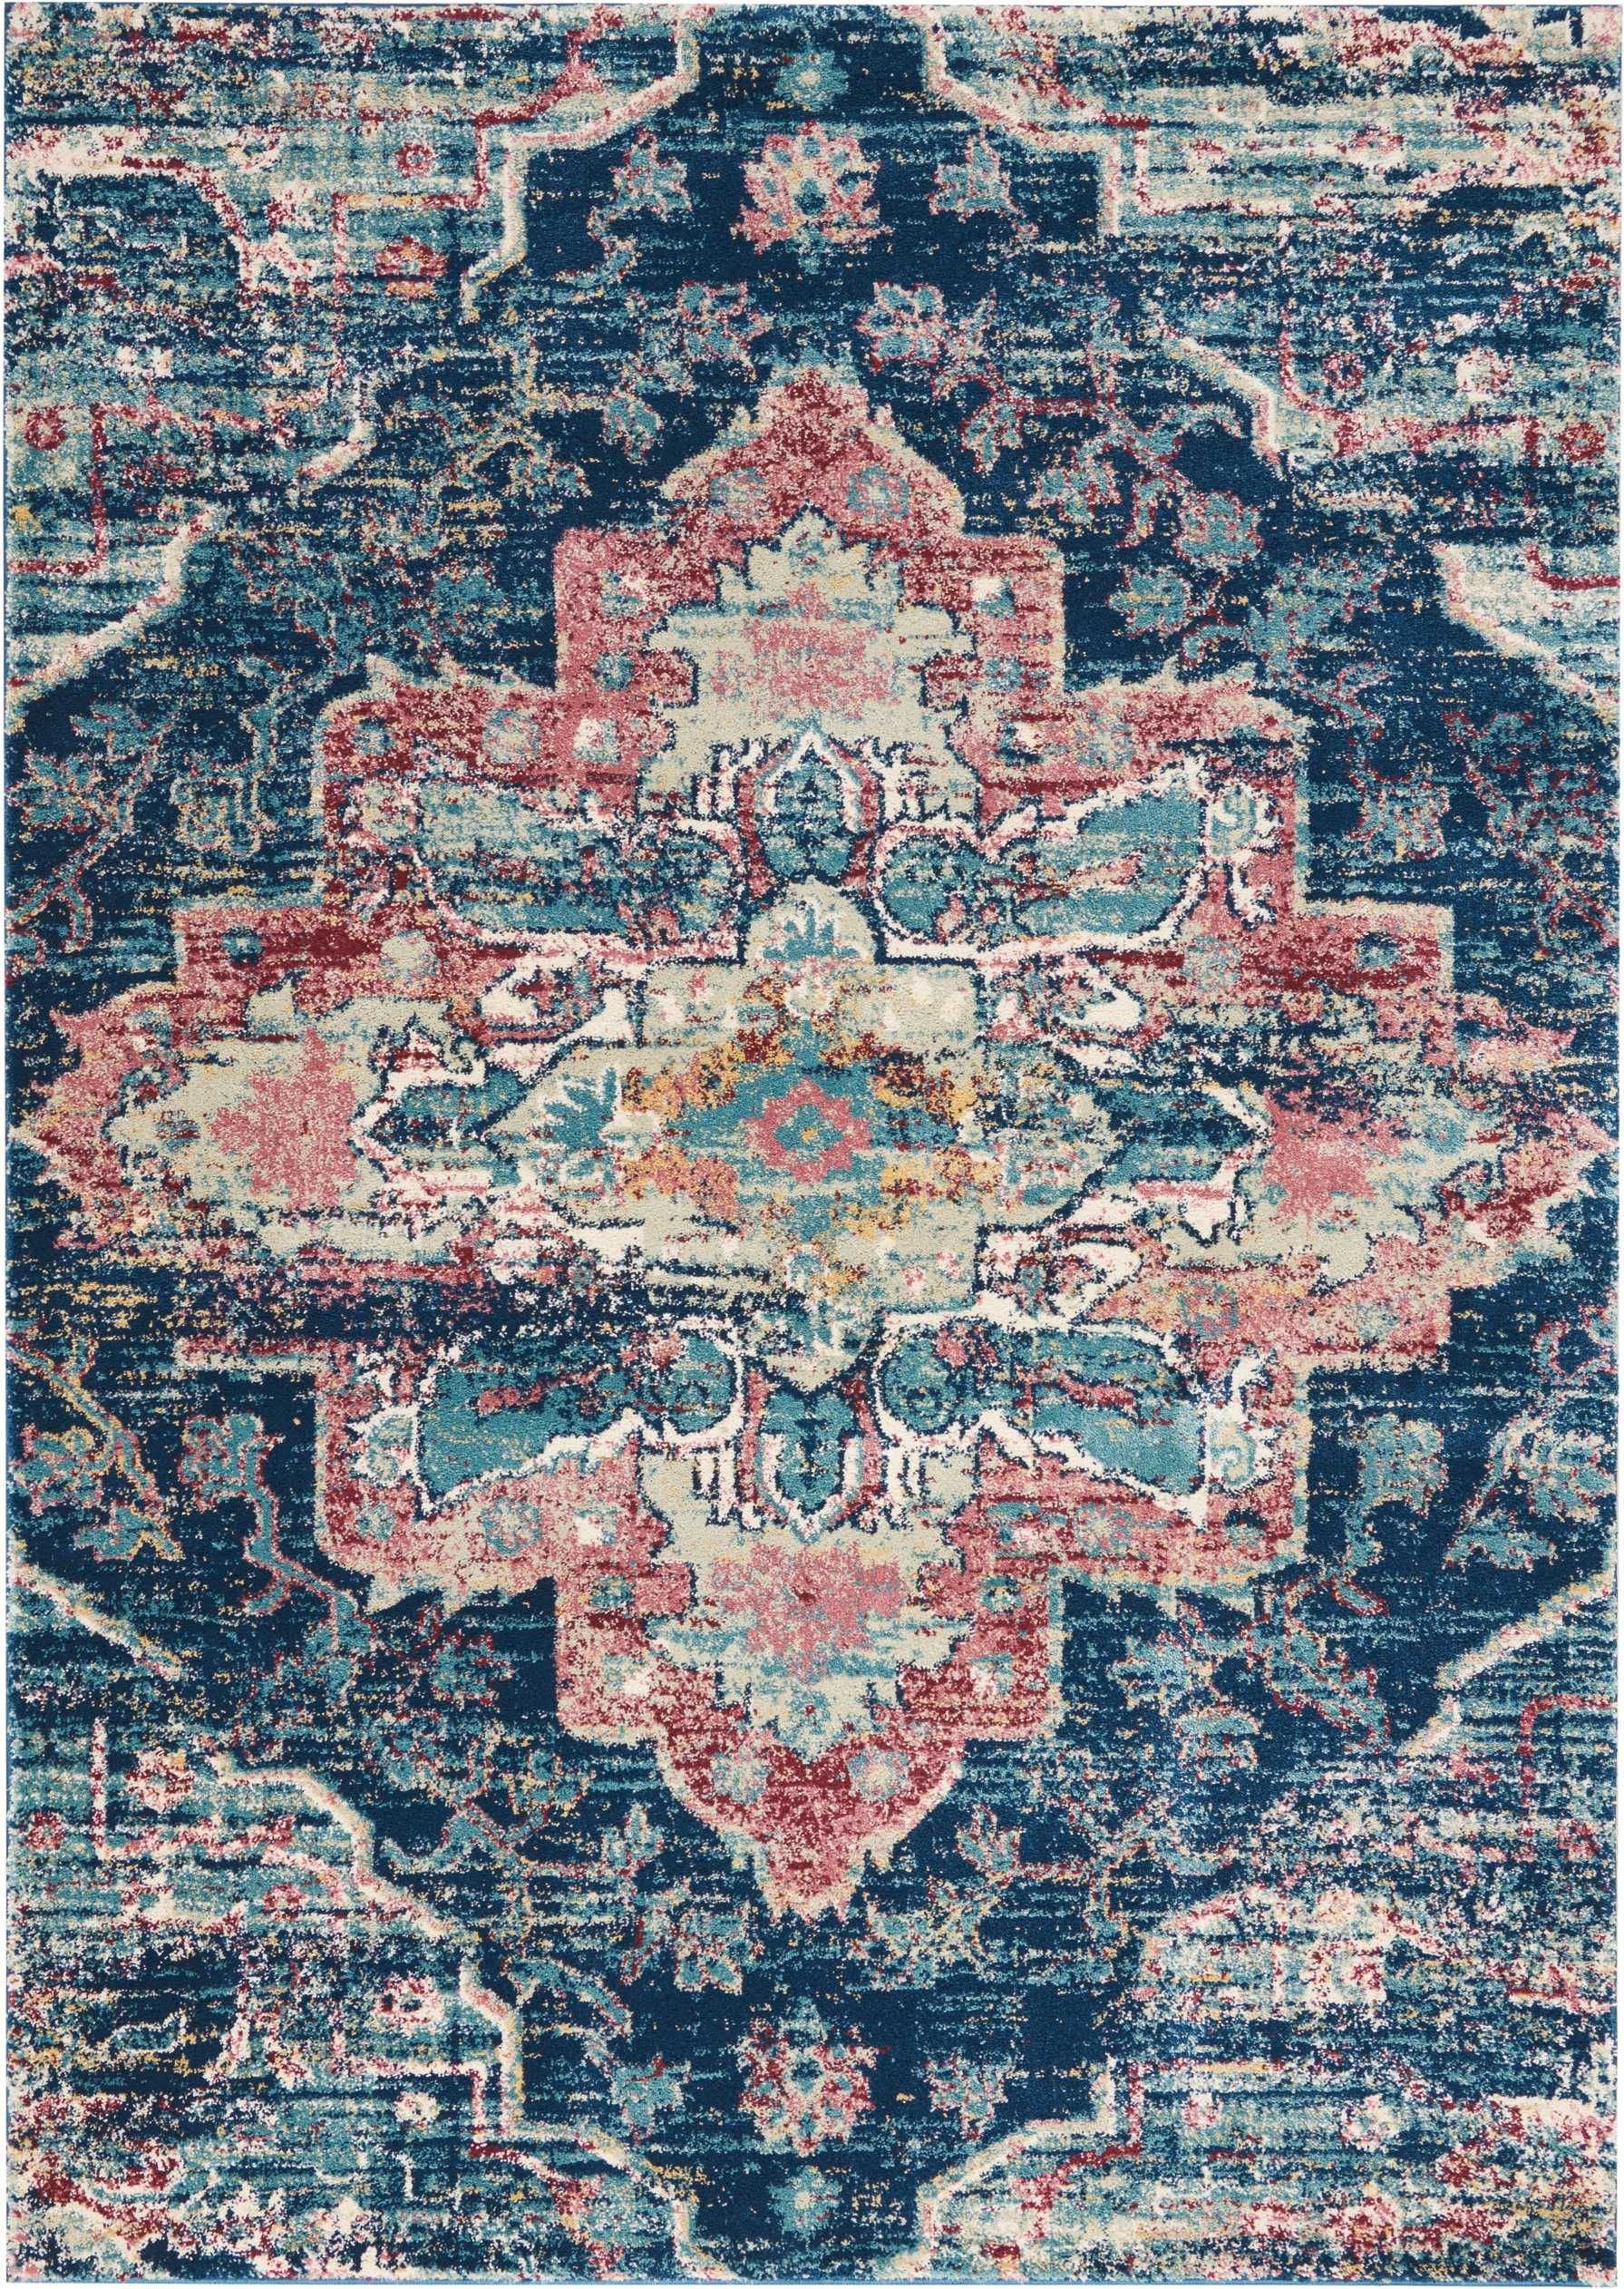 Fss13 Fusion Navy Pink Traditional Persian Rug Design Takes A Luxurious Turn In This Plush Collection Intricate Fl Patterns On Distressed